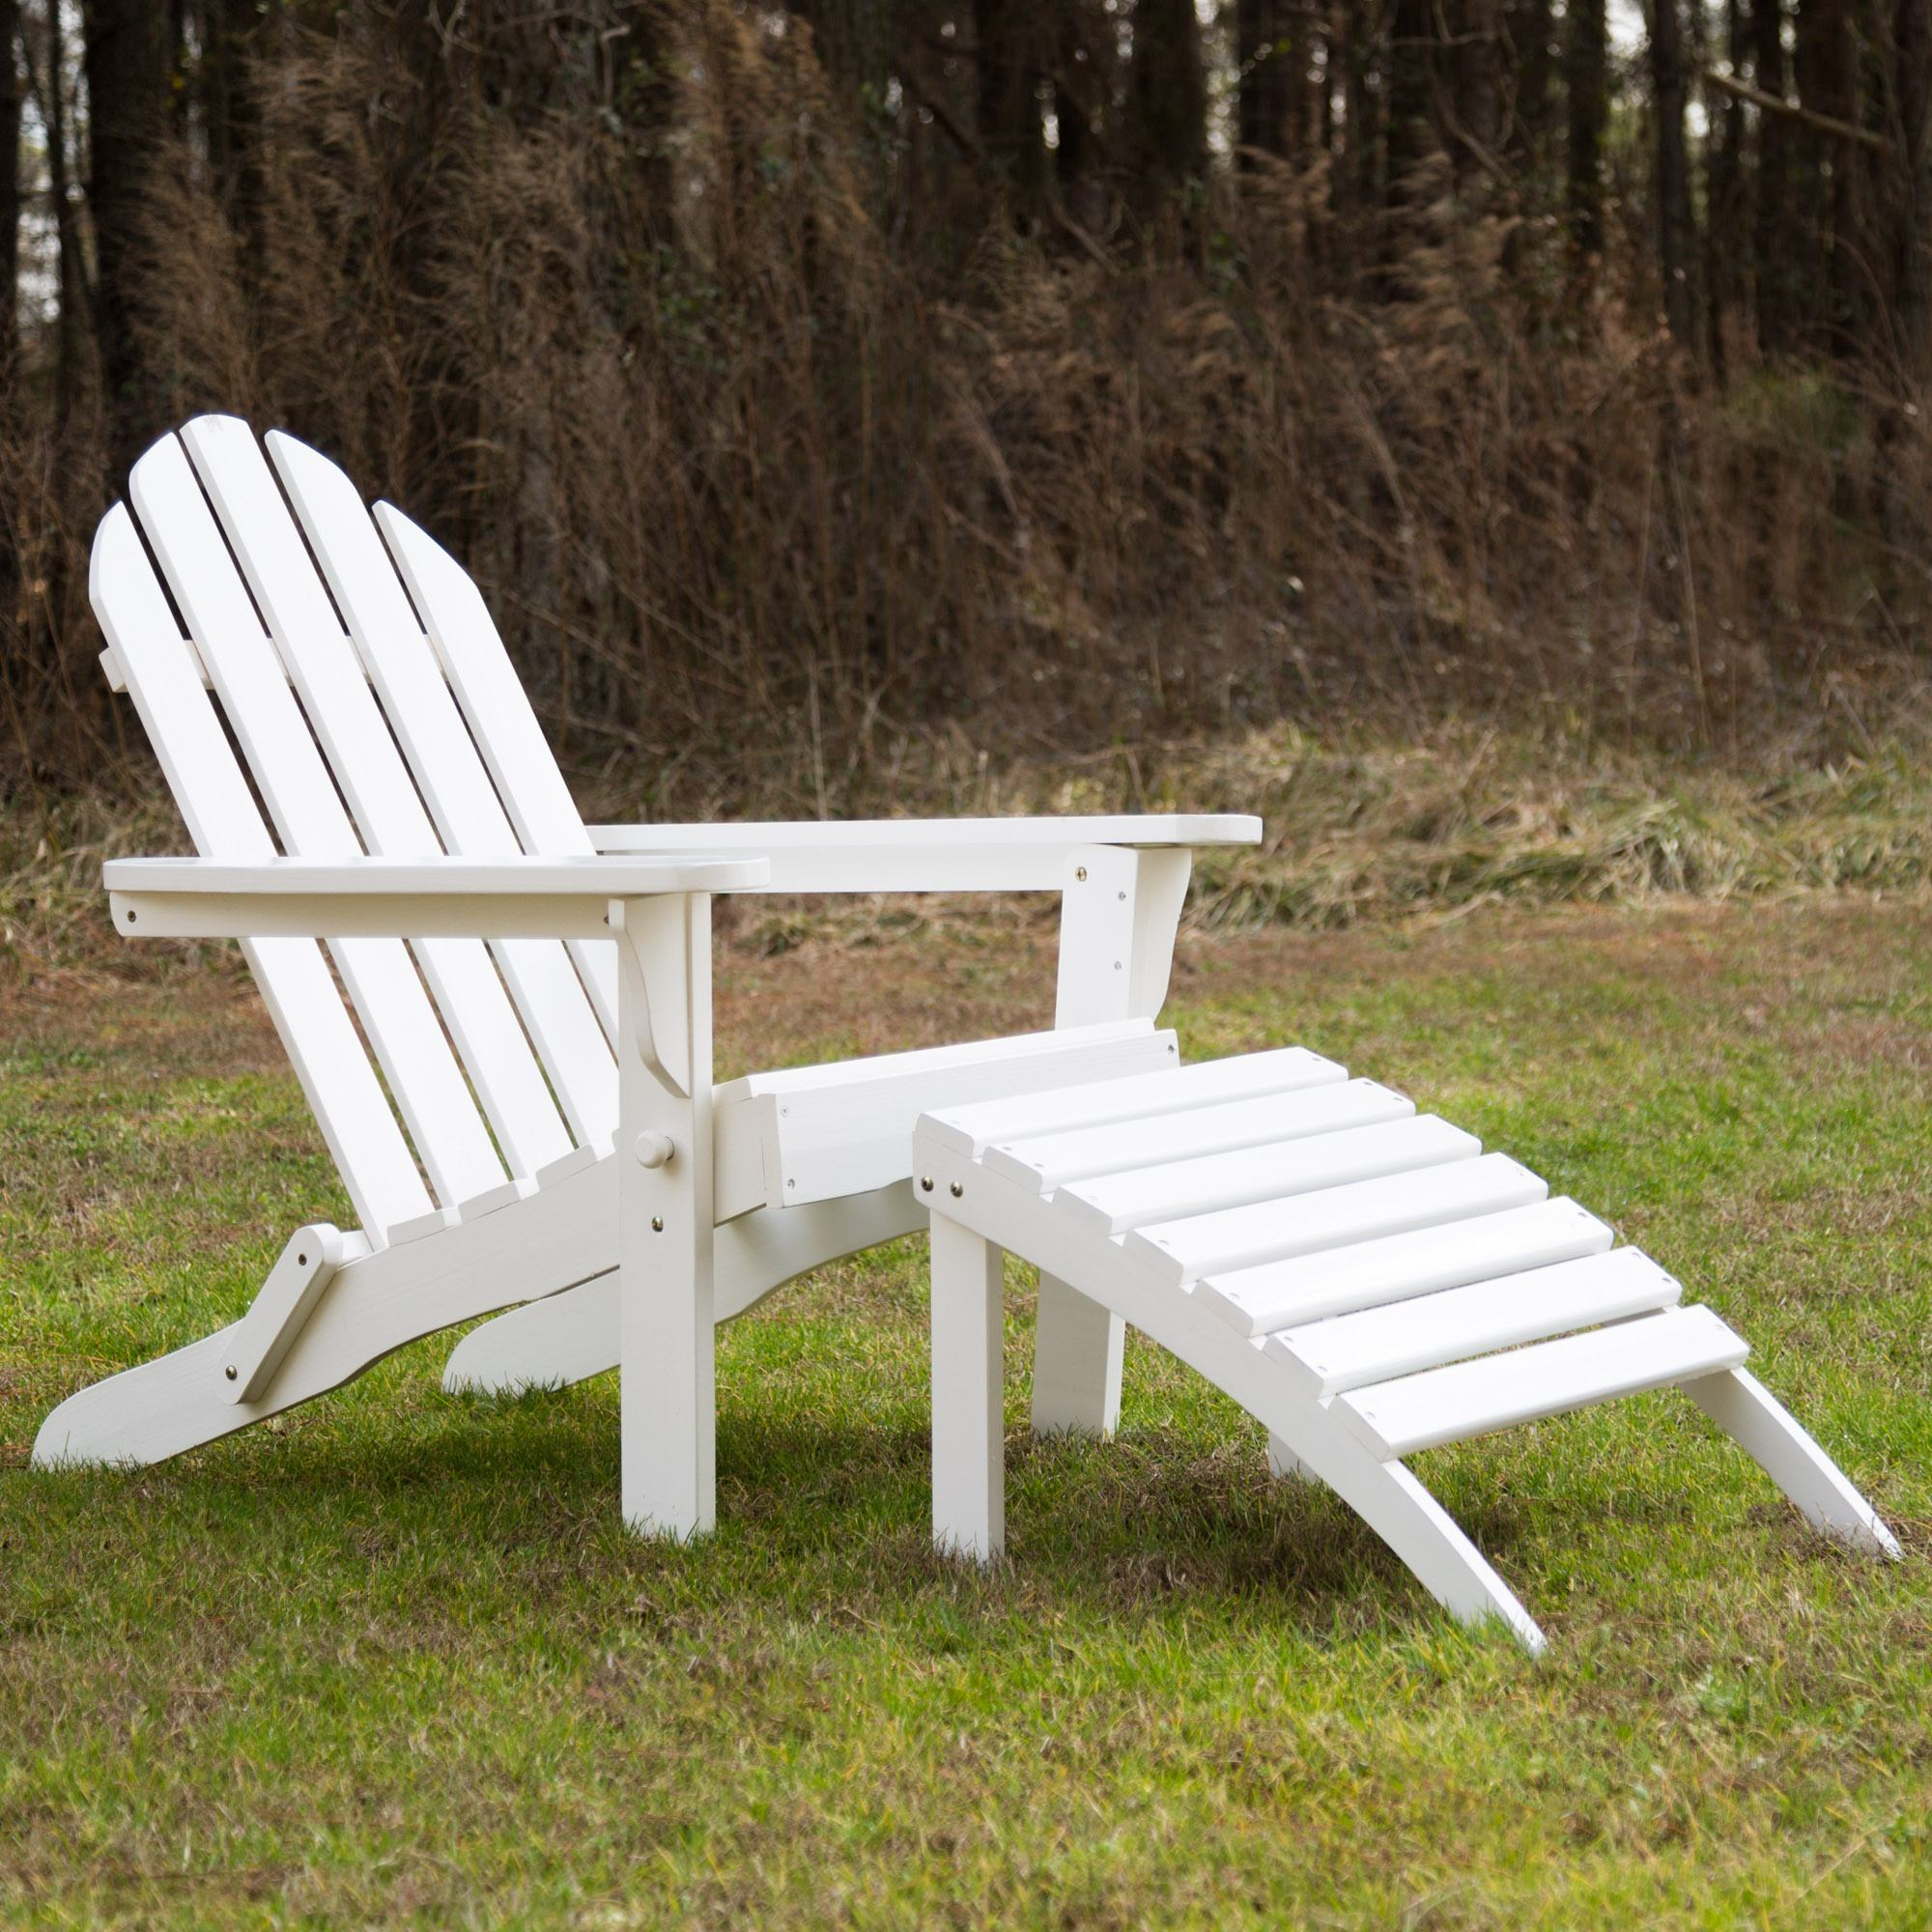 Exclusive Folding Wood Adirondack Chair - Painted White ... & Exclusive Folding Wood Adirondack Chair - Painted White|Essentials ...